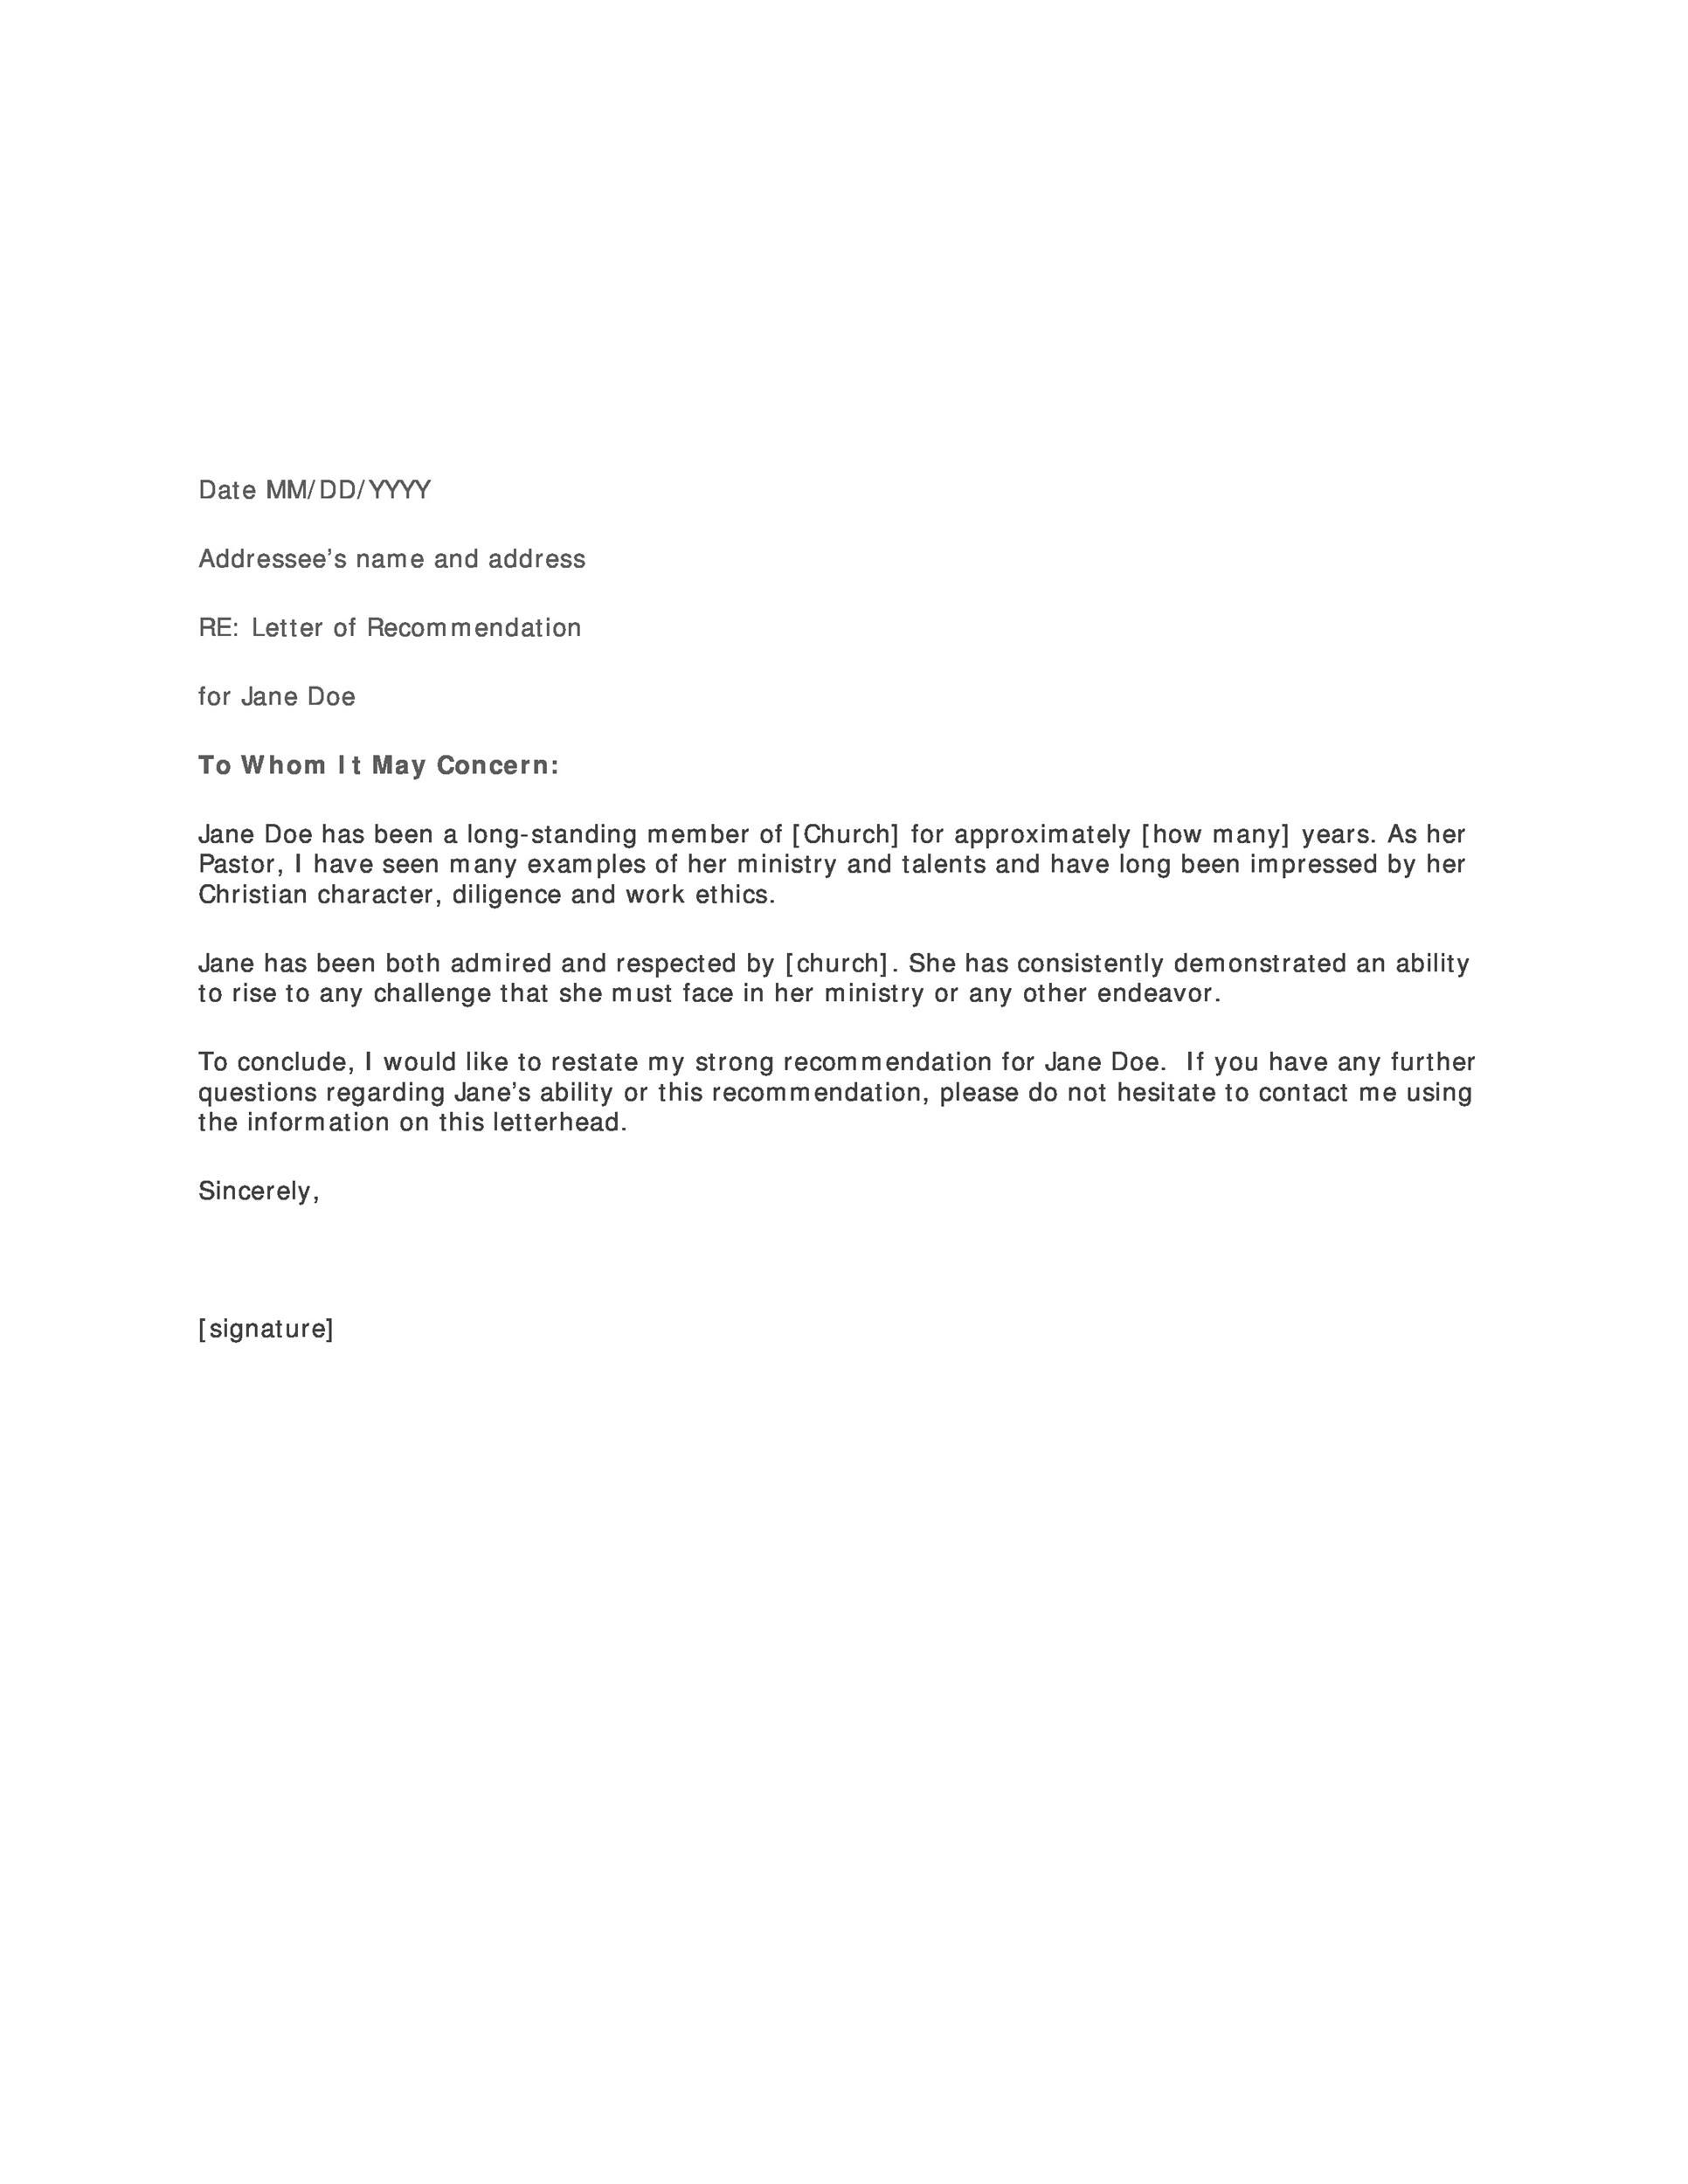 007 Stunning Letter Of Recommendation Template Word Picture  General Free DocFull